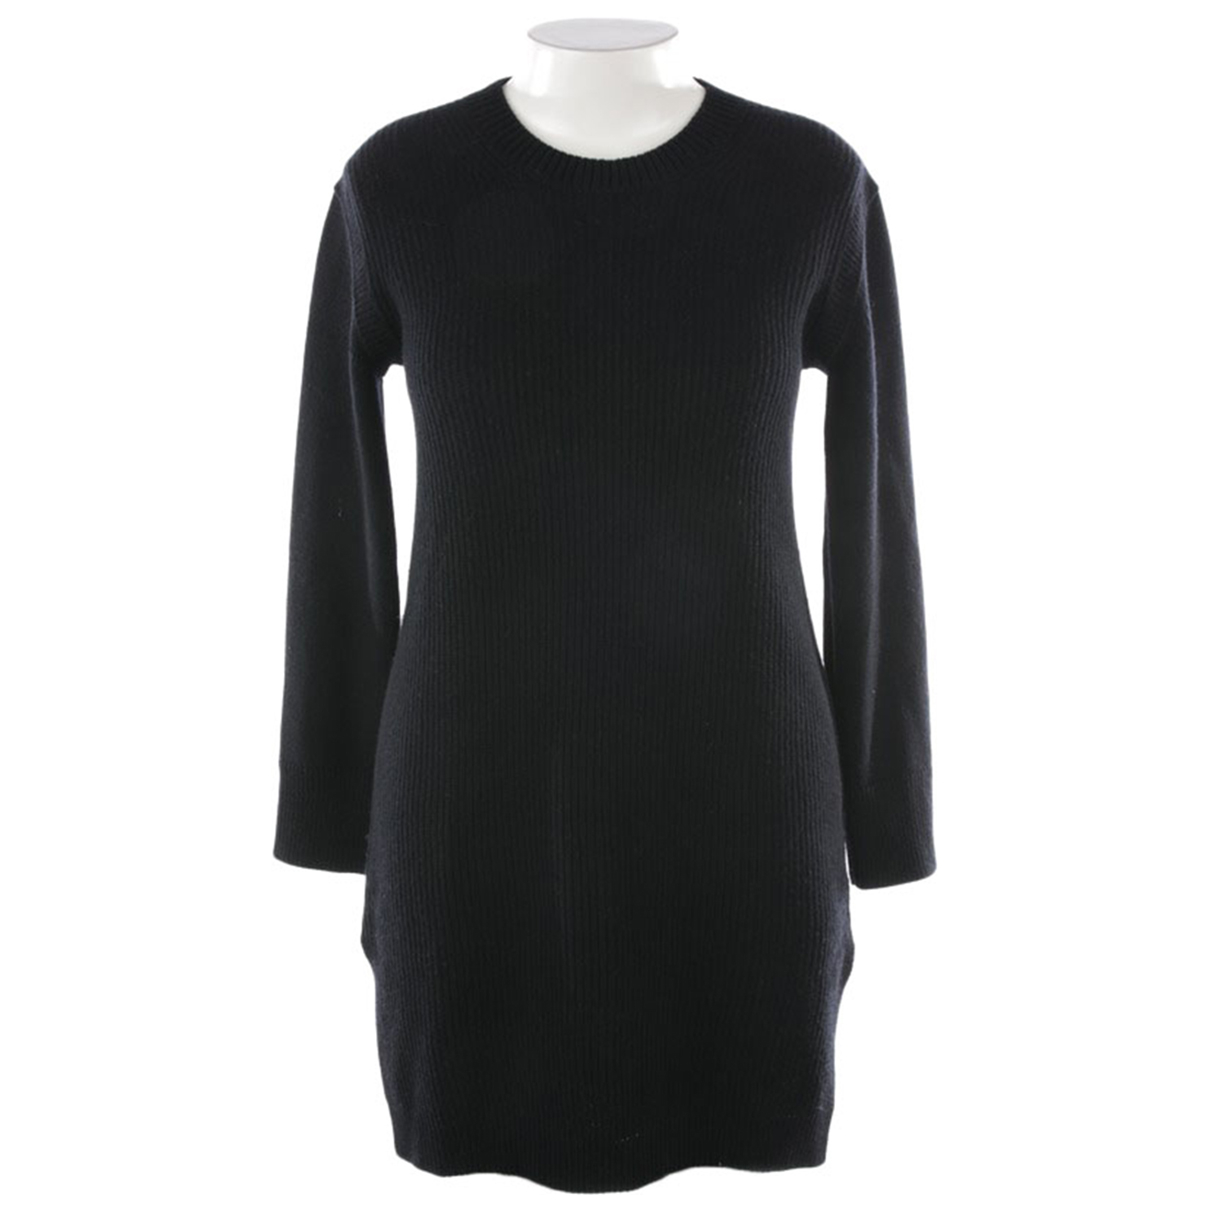 Dorothee Schumacher \N Black Wool dress for Women 36 FR